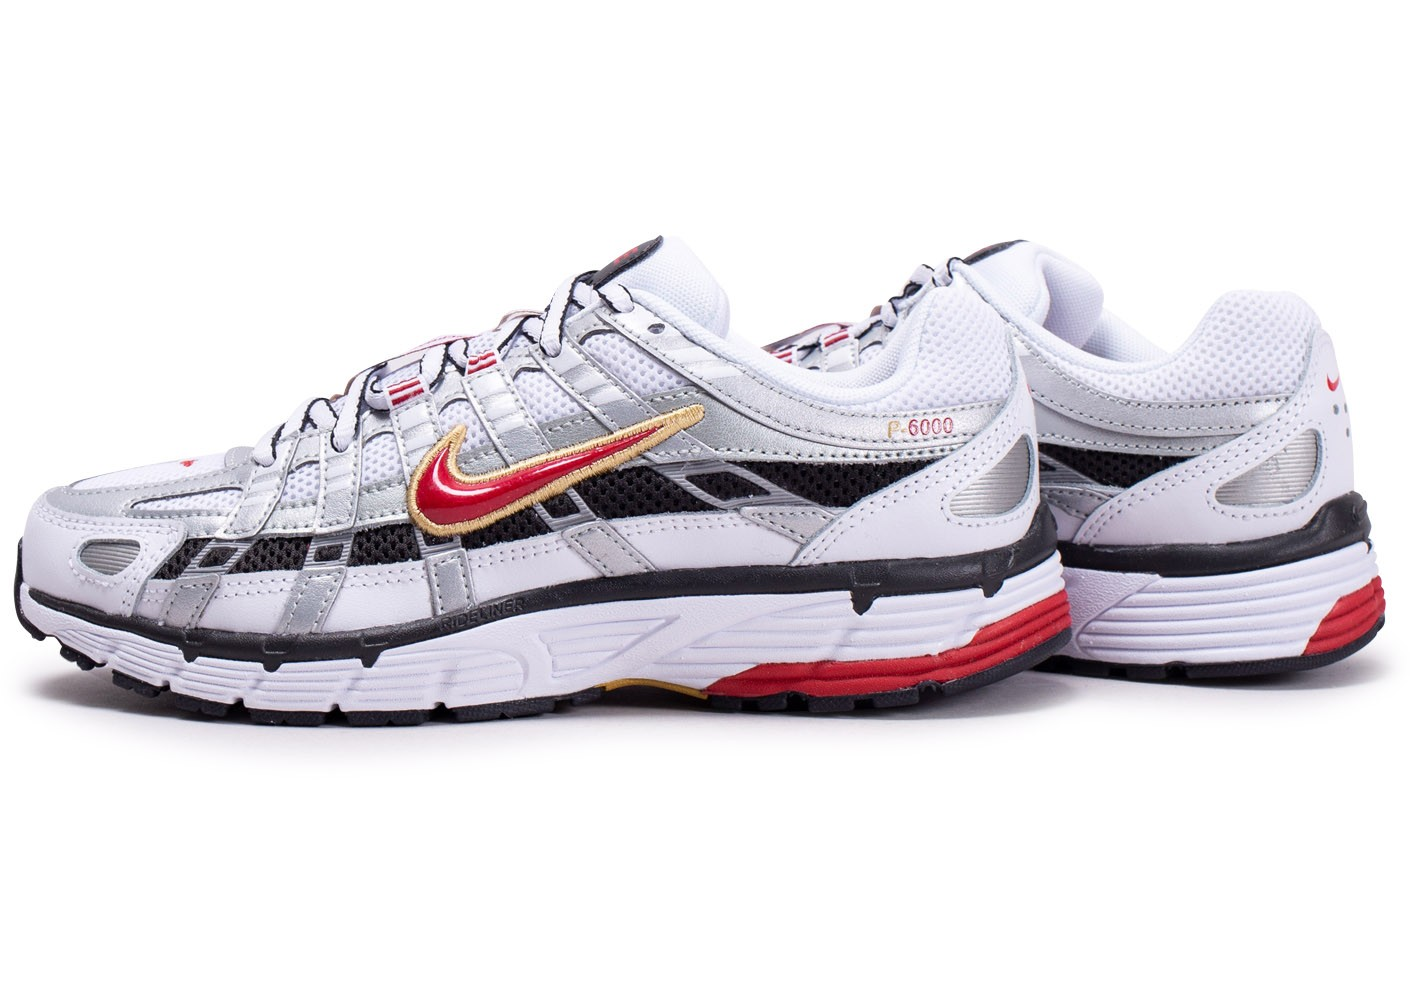 Nike P 6000 blanc gris rouge femme Chaussures Baskets